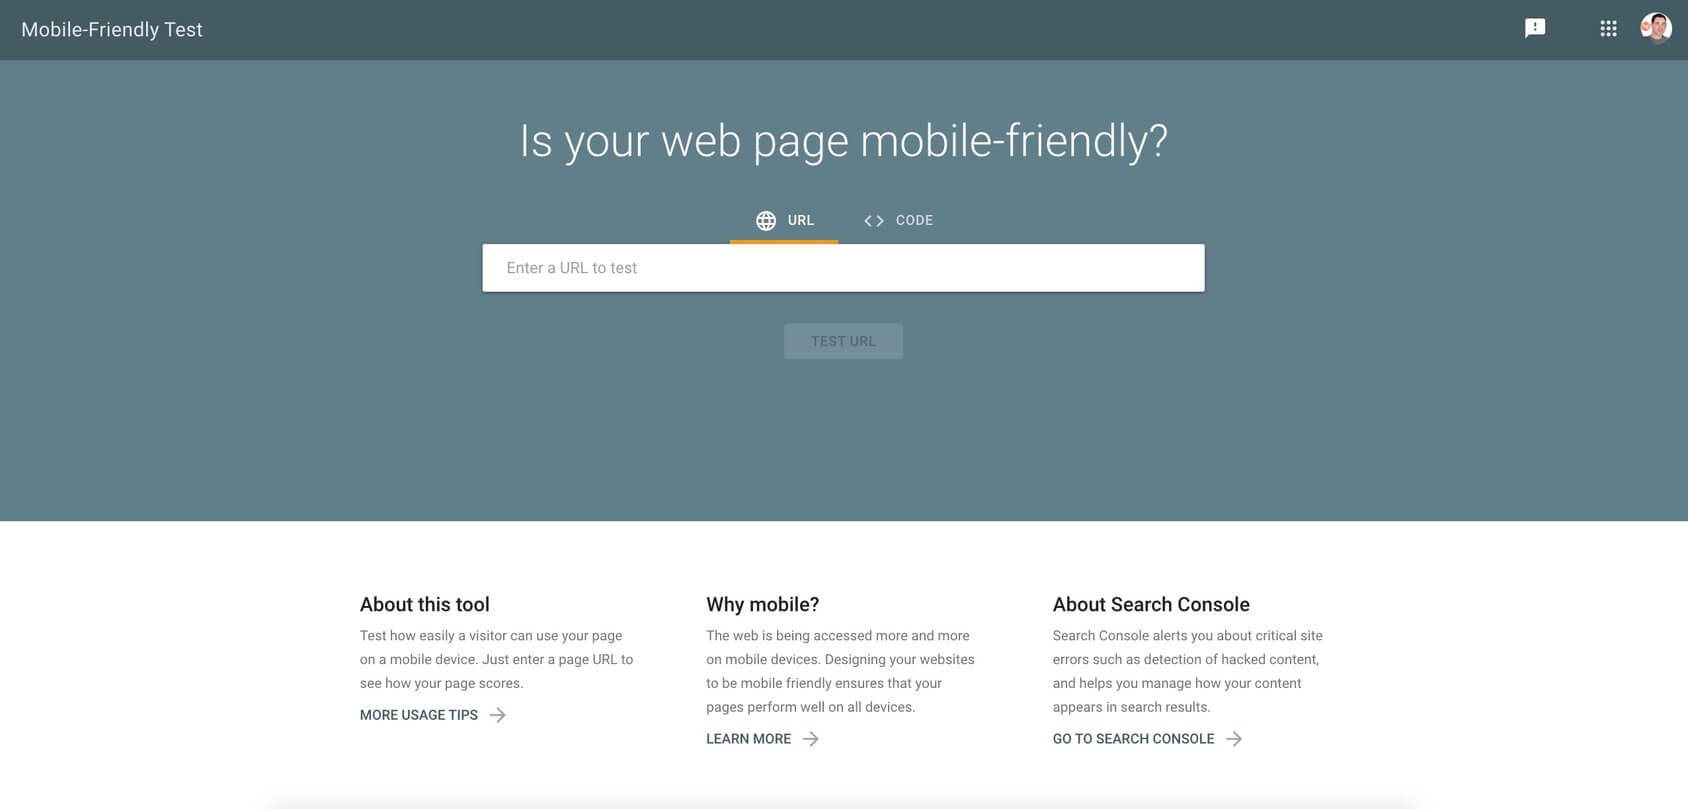 Google's Mobile-Friendly homepage